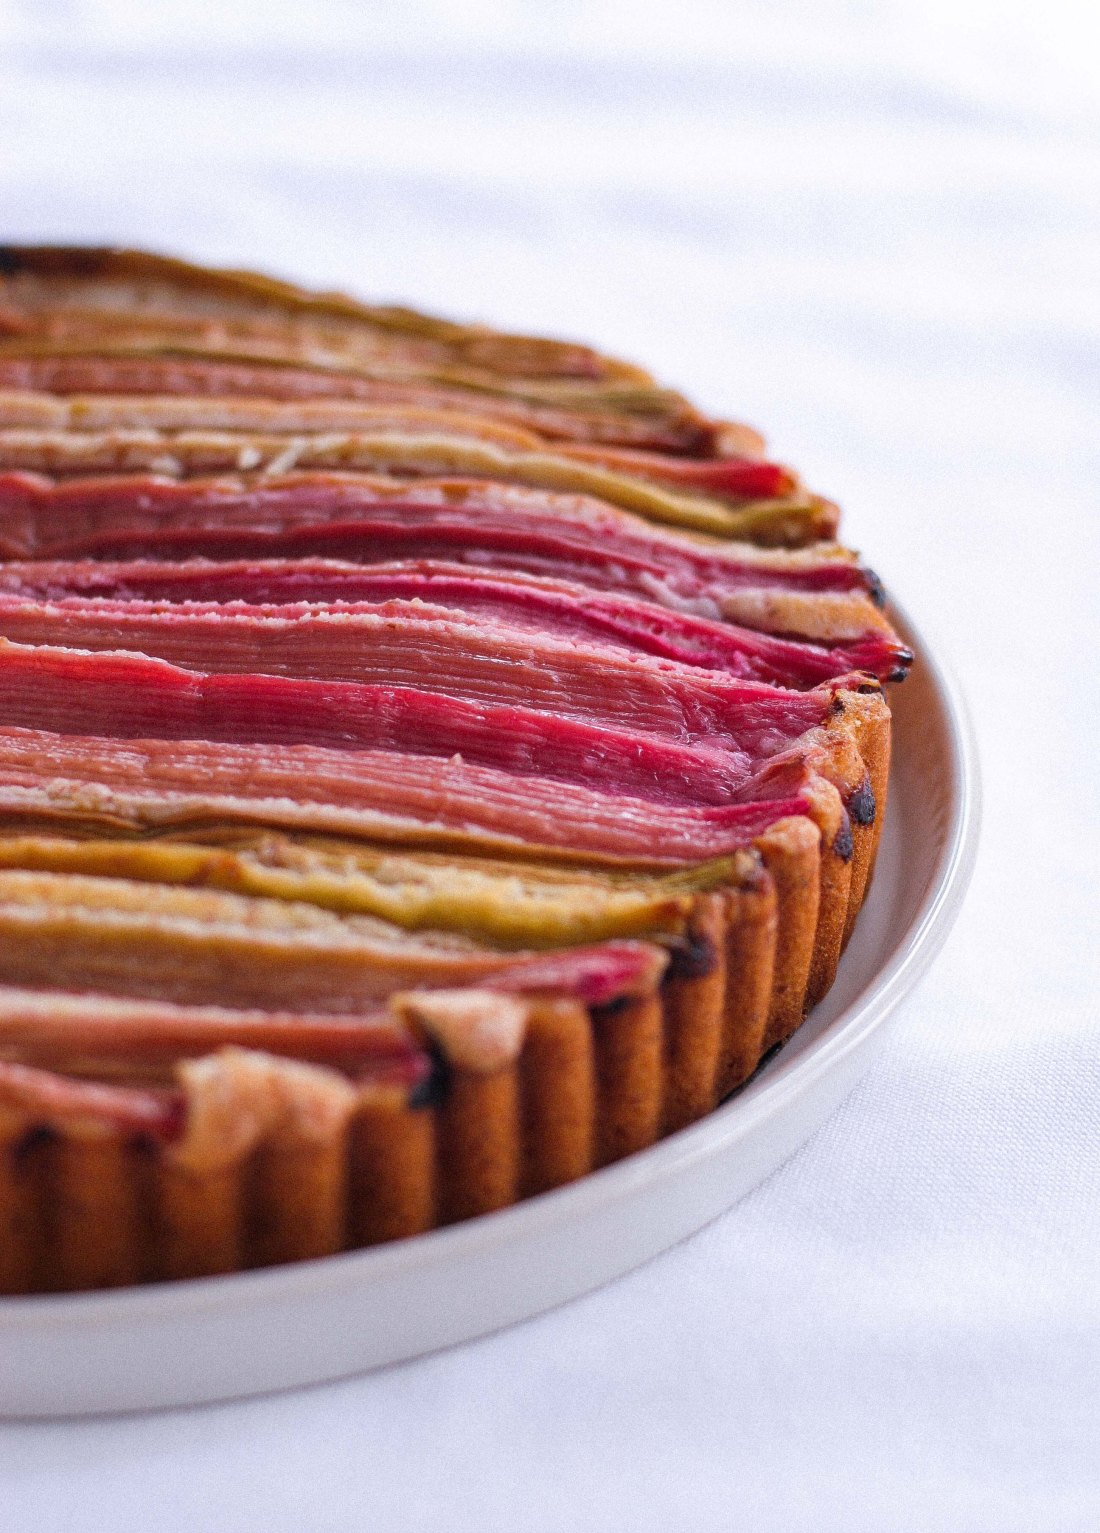 Rhubarb_Financier-3